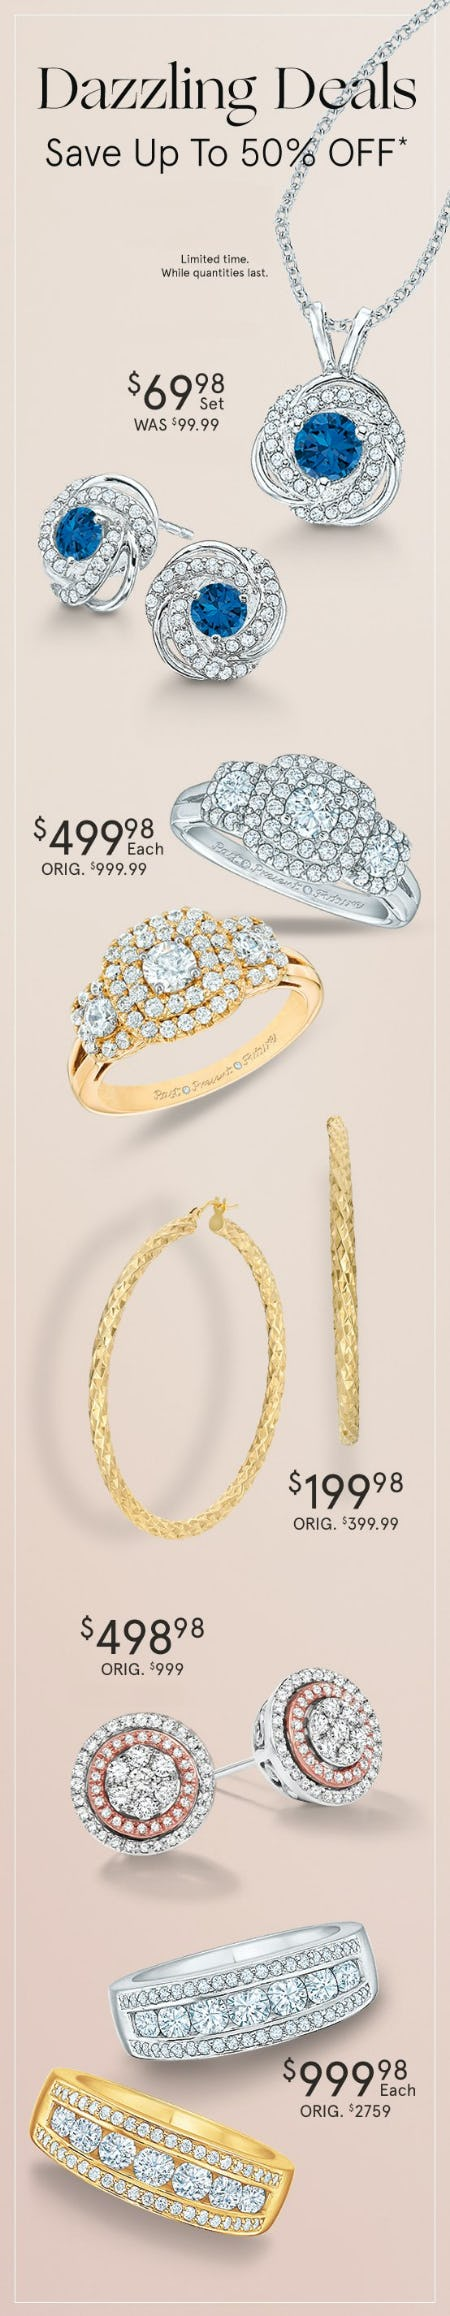 Dazzling Deals up to 50% Off from Zales The Diamond Store